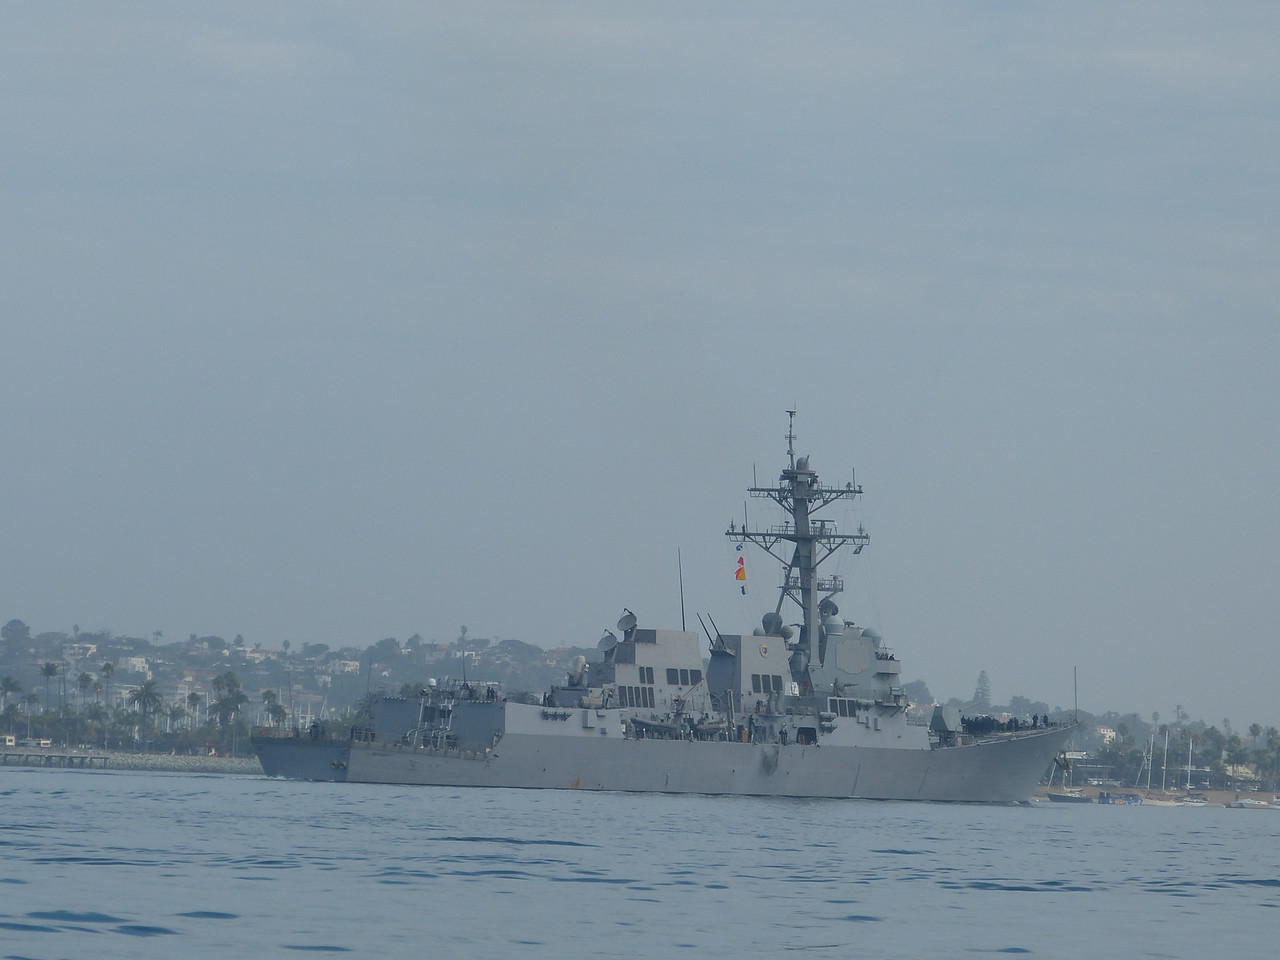 Couldn't make out a name or number on this warship, but she was one of the ones that came home to roost while we were out there.